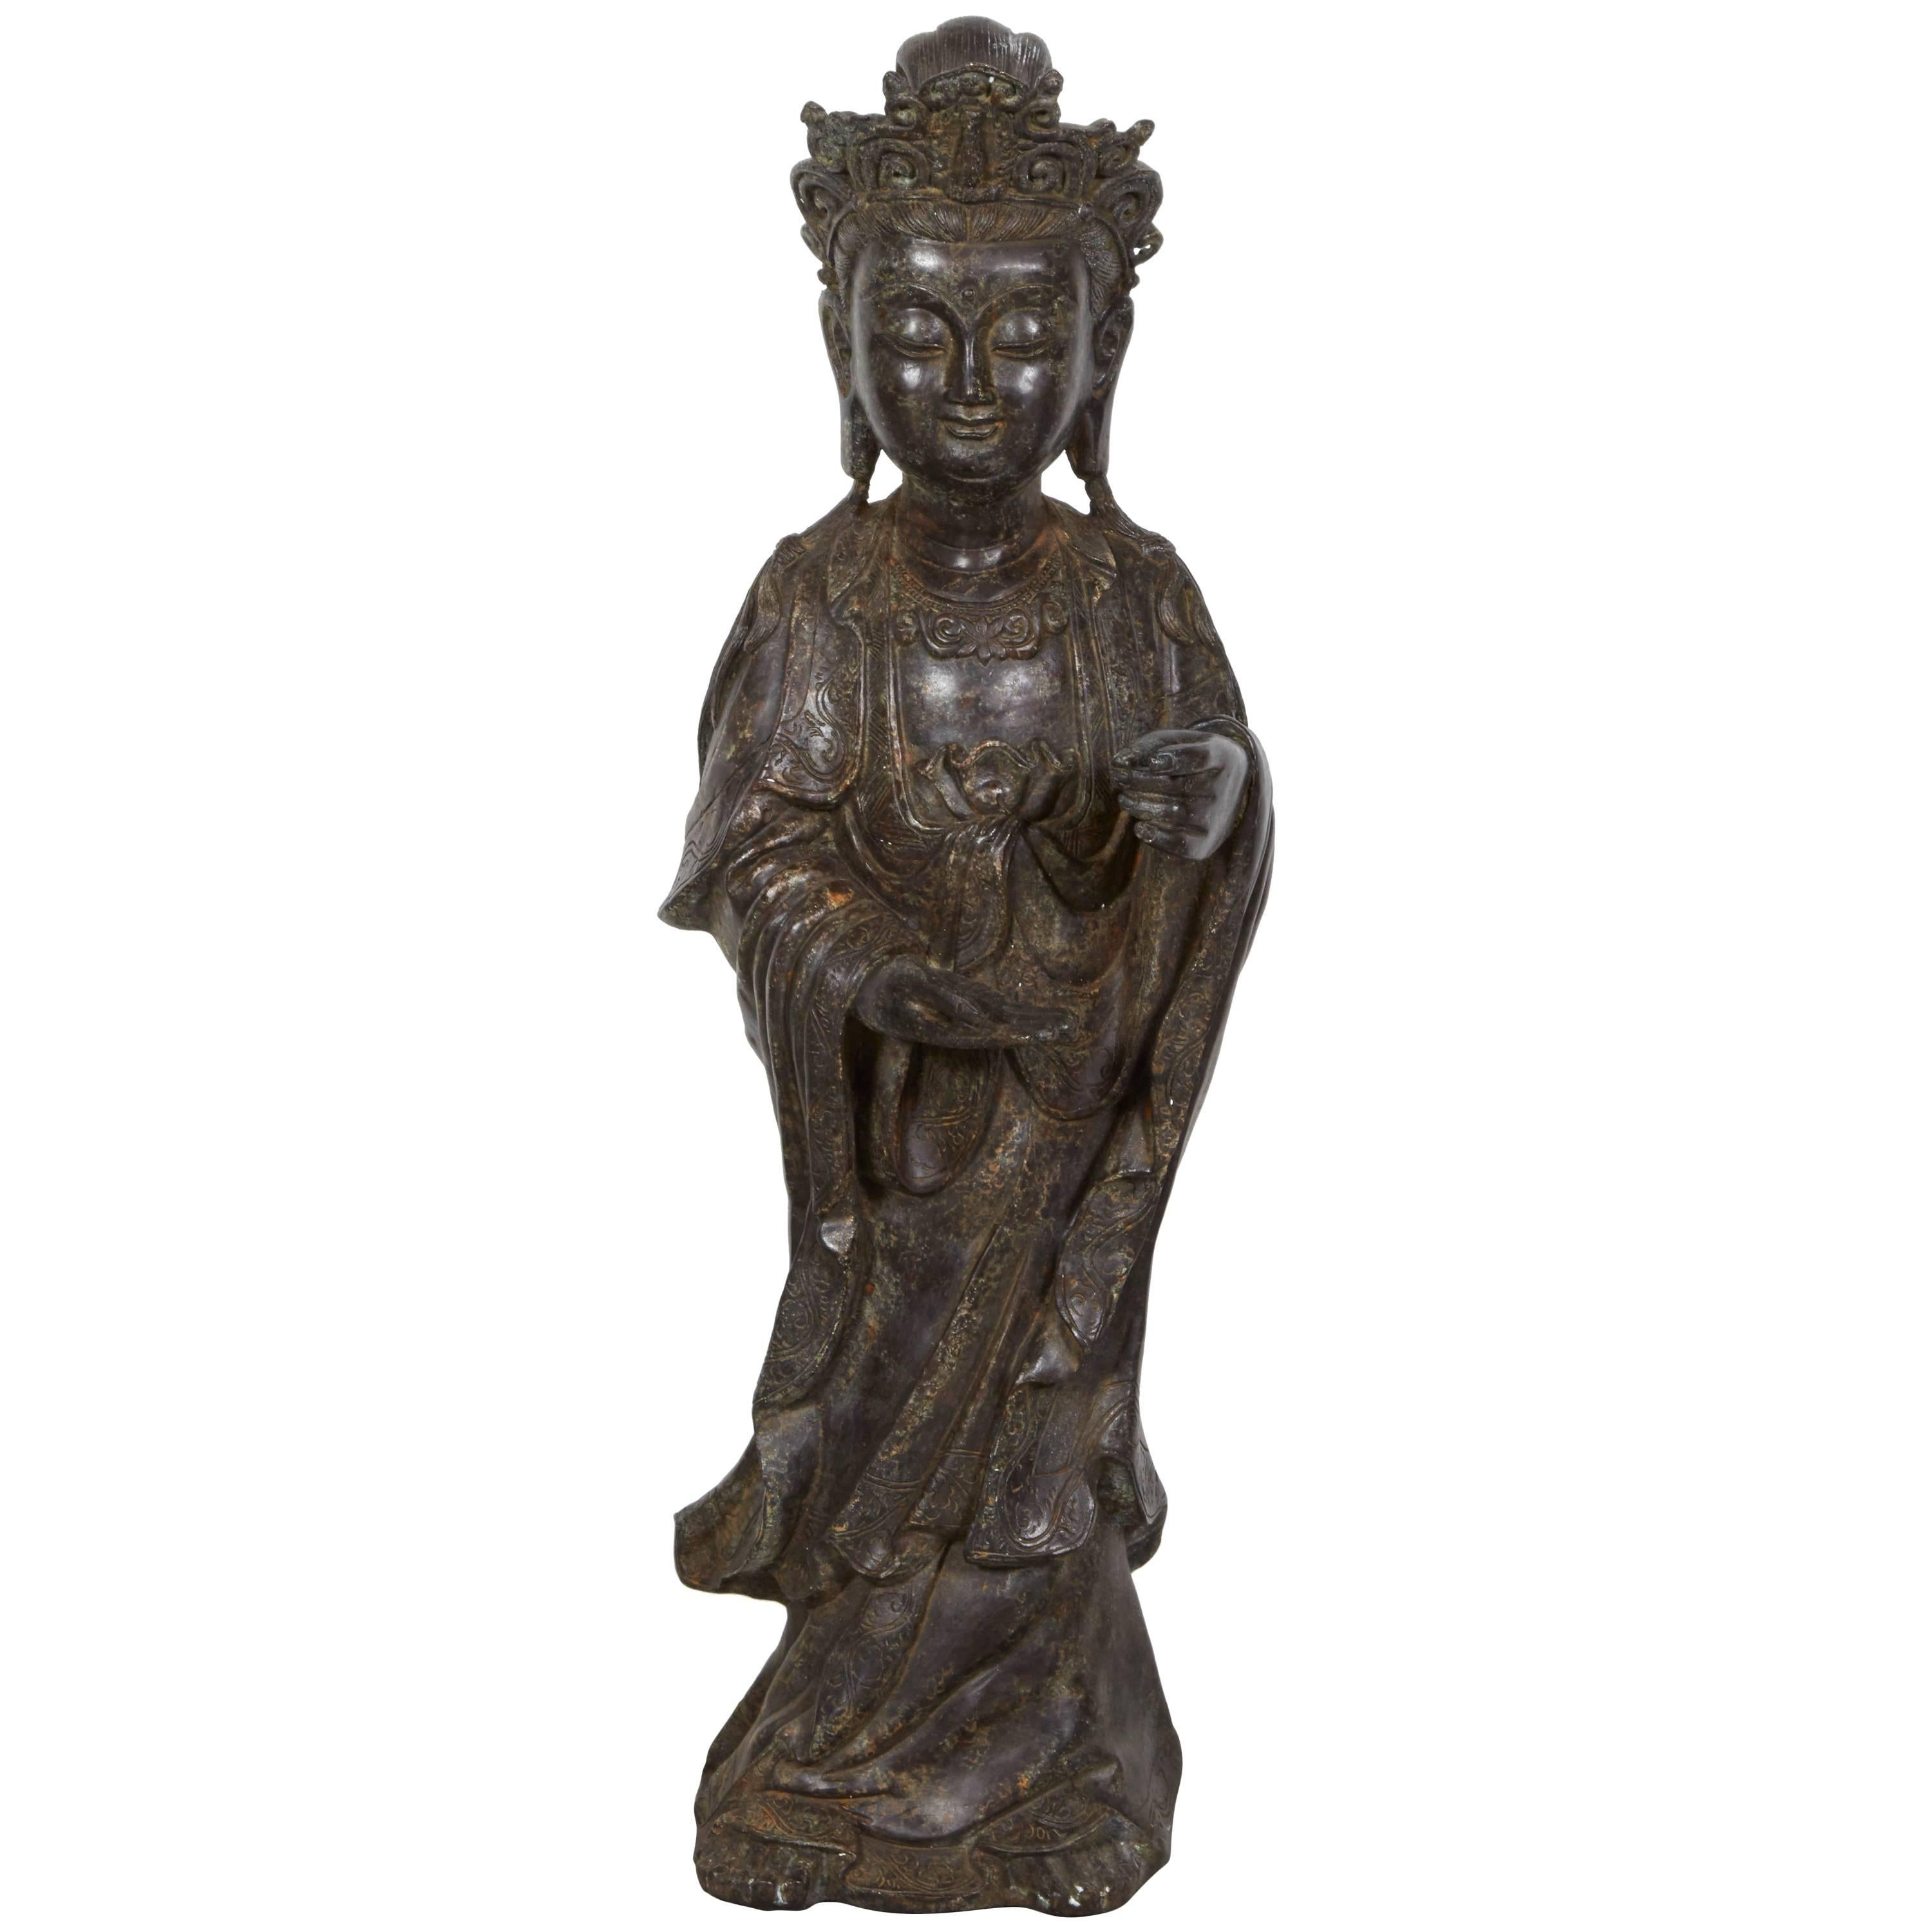 Standing Antique Bronze Buddha Sculpture with Crown and Elaborate Flowing Robes